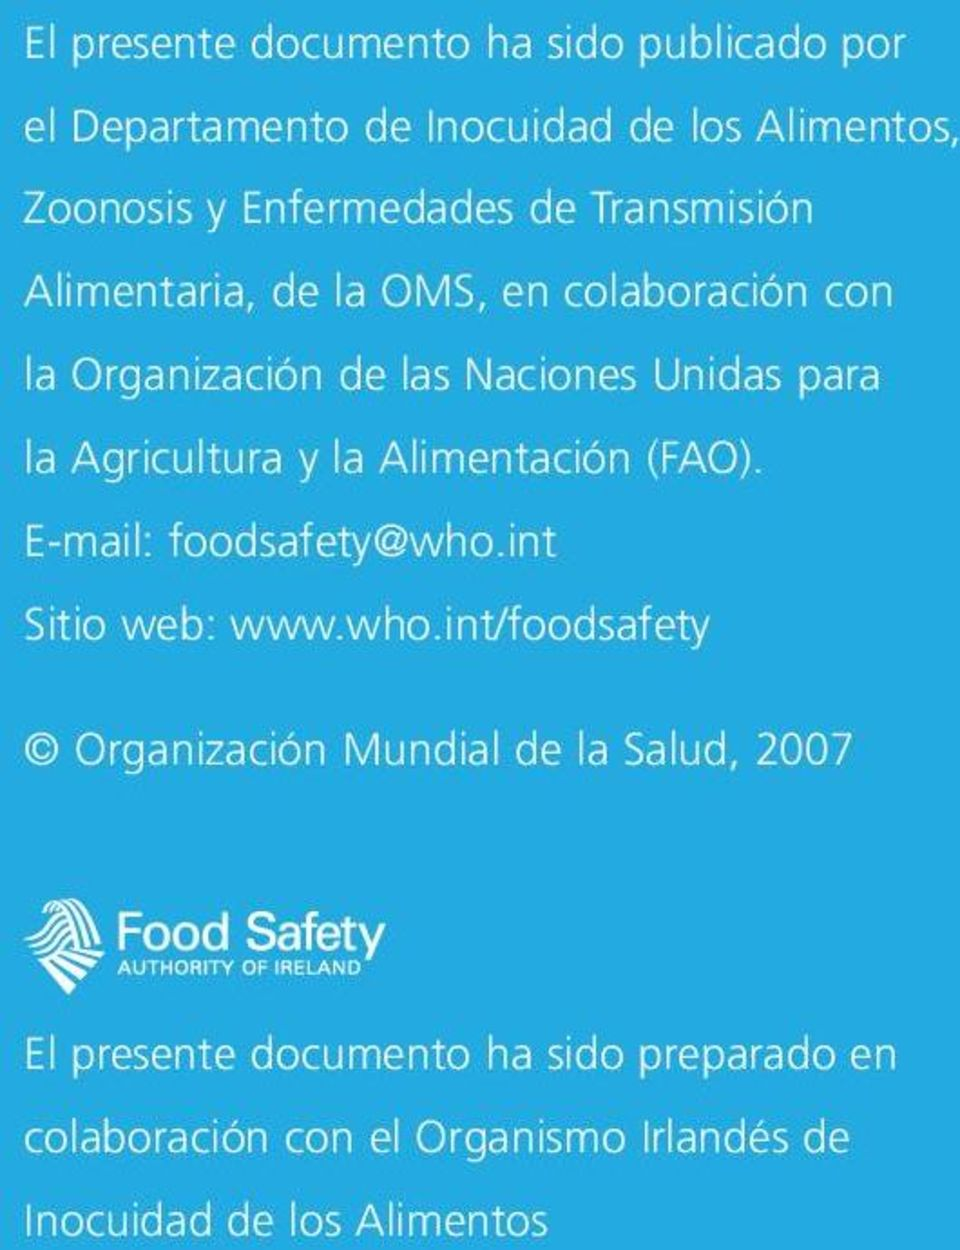 la Alimentación (FAO). E-mail: foodsafety@who.